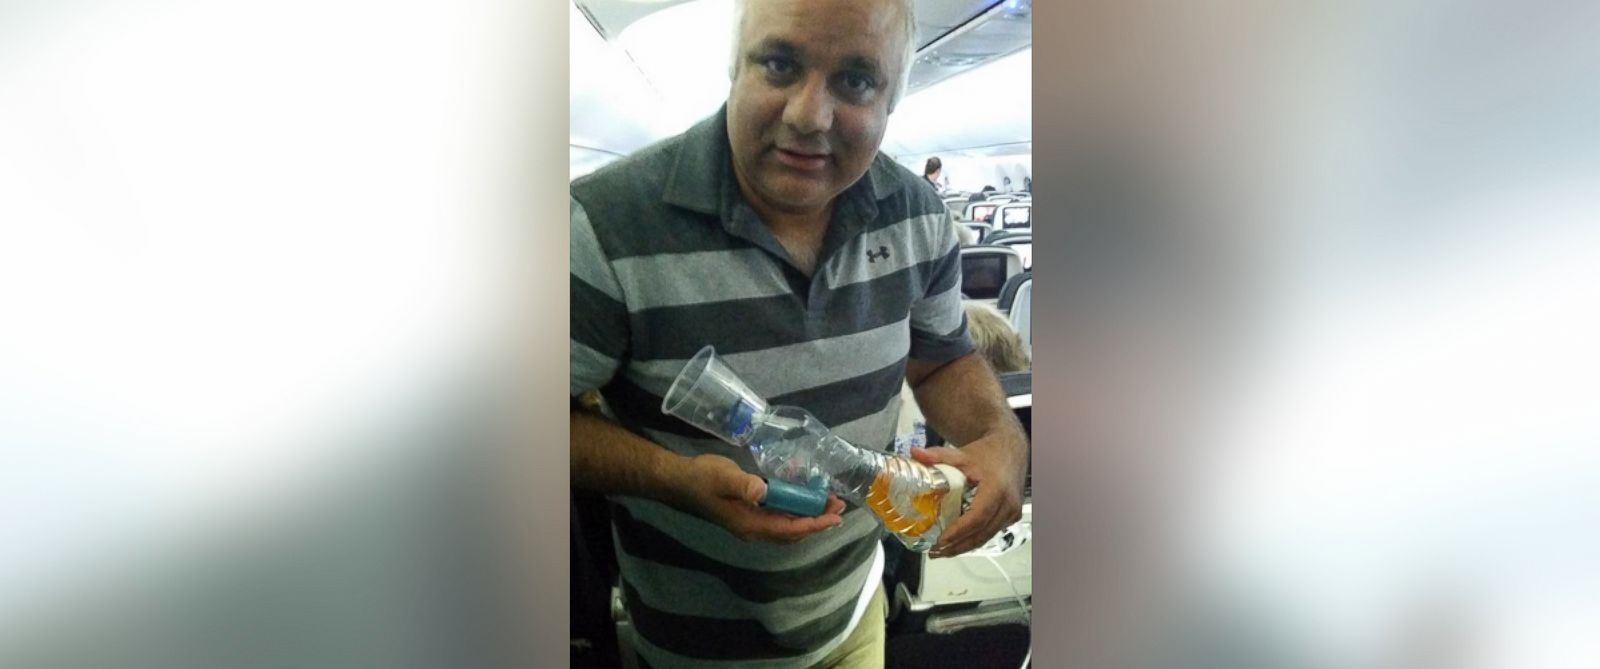 """PHOTO: This photo was uploaded to Twitter on Sept. 18, 2015 with the caption, """"Flying back from ERUS15 had to design a nebuliser for a 2 yr old asthmatic over the atlantic. Thank God kid did well!"""""""